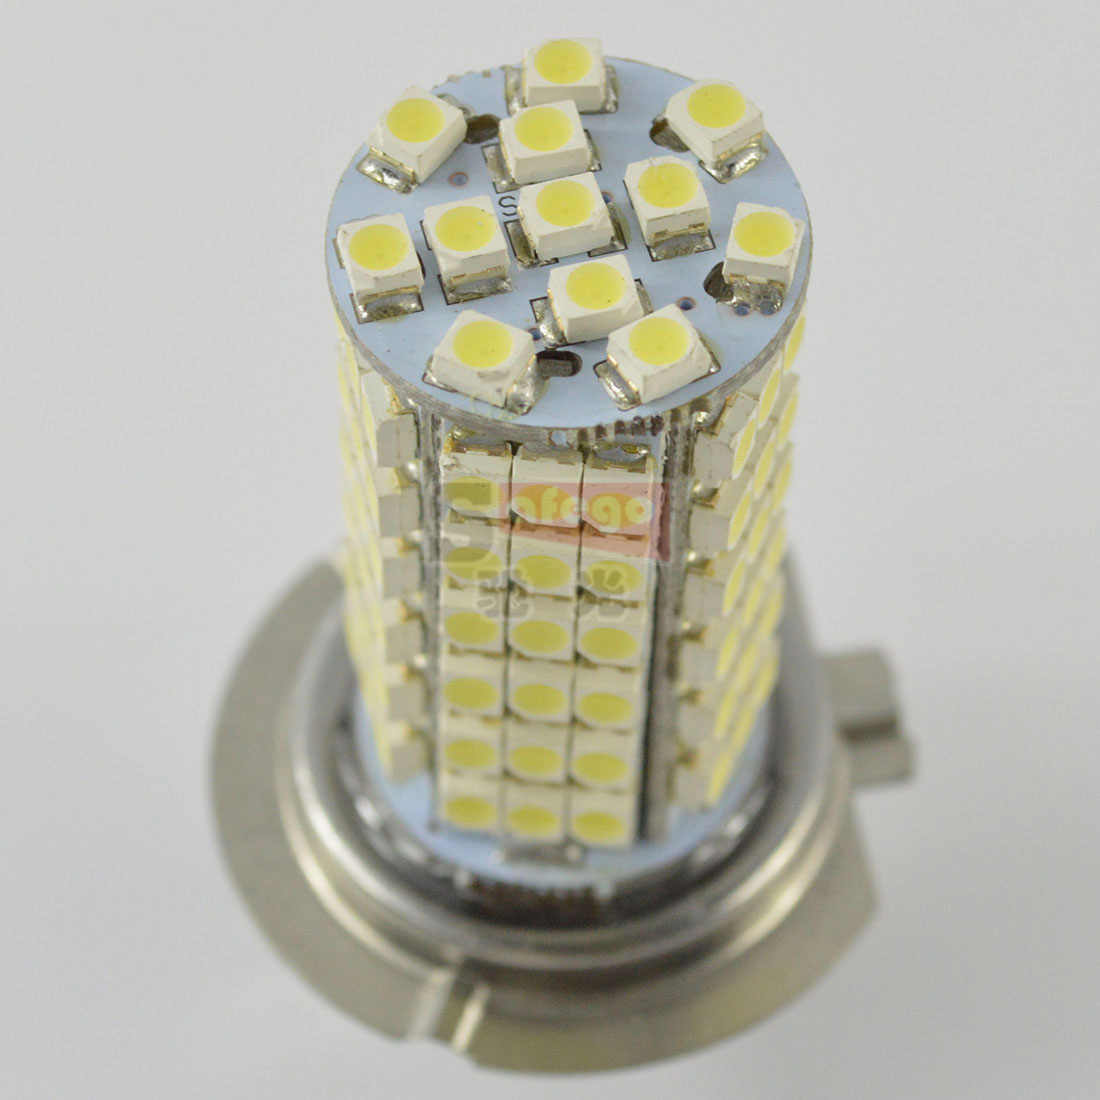 1X H7 Fog lamps 102 LED 3528 SMD 12V H7 Base Xenon White for Car auto h7 Fog Driving Head Light Lamp